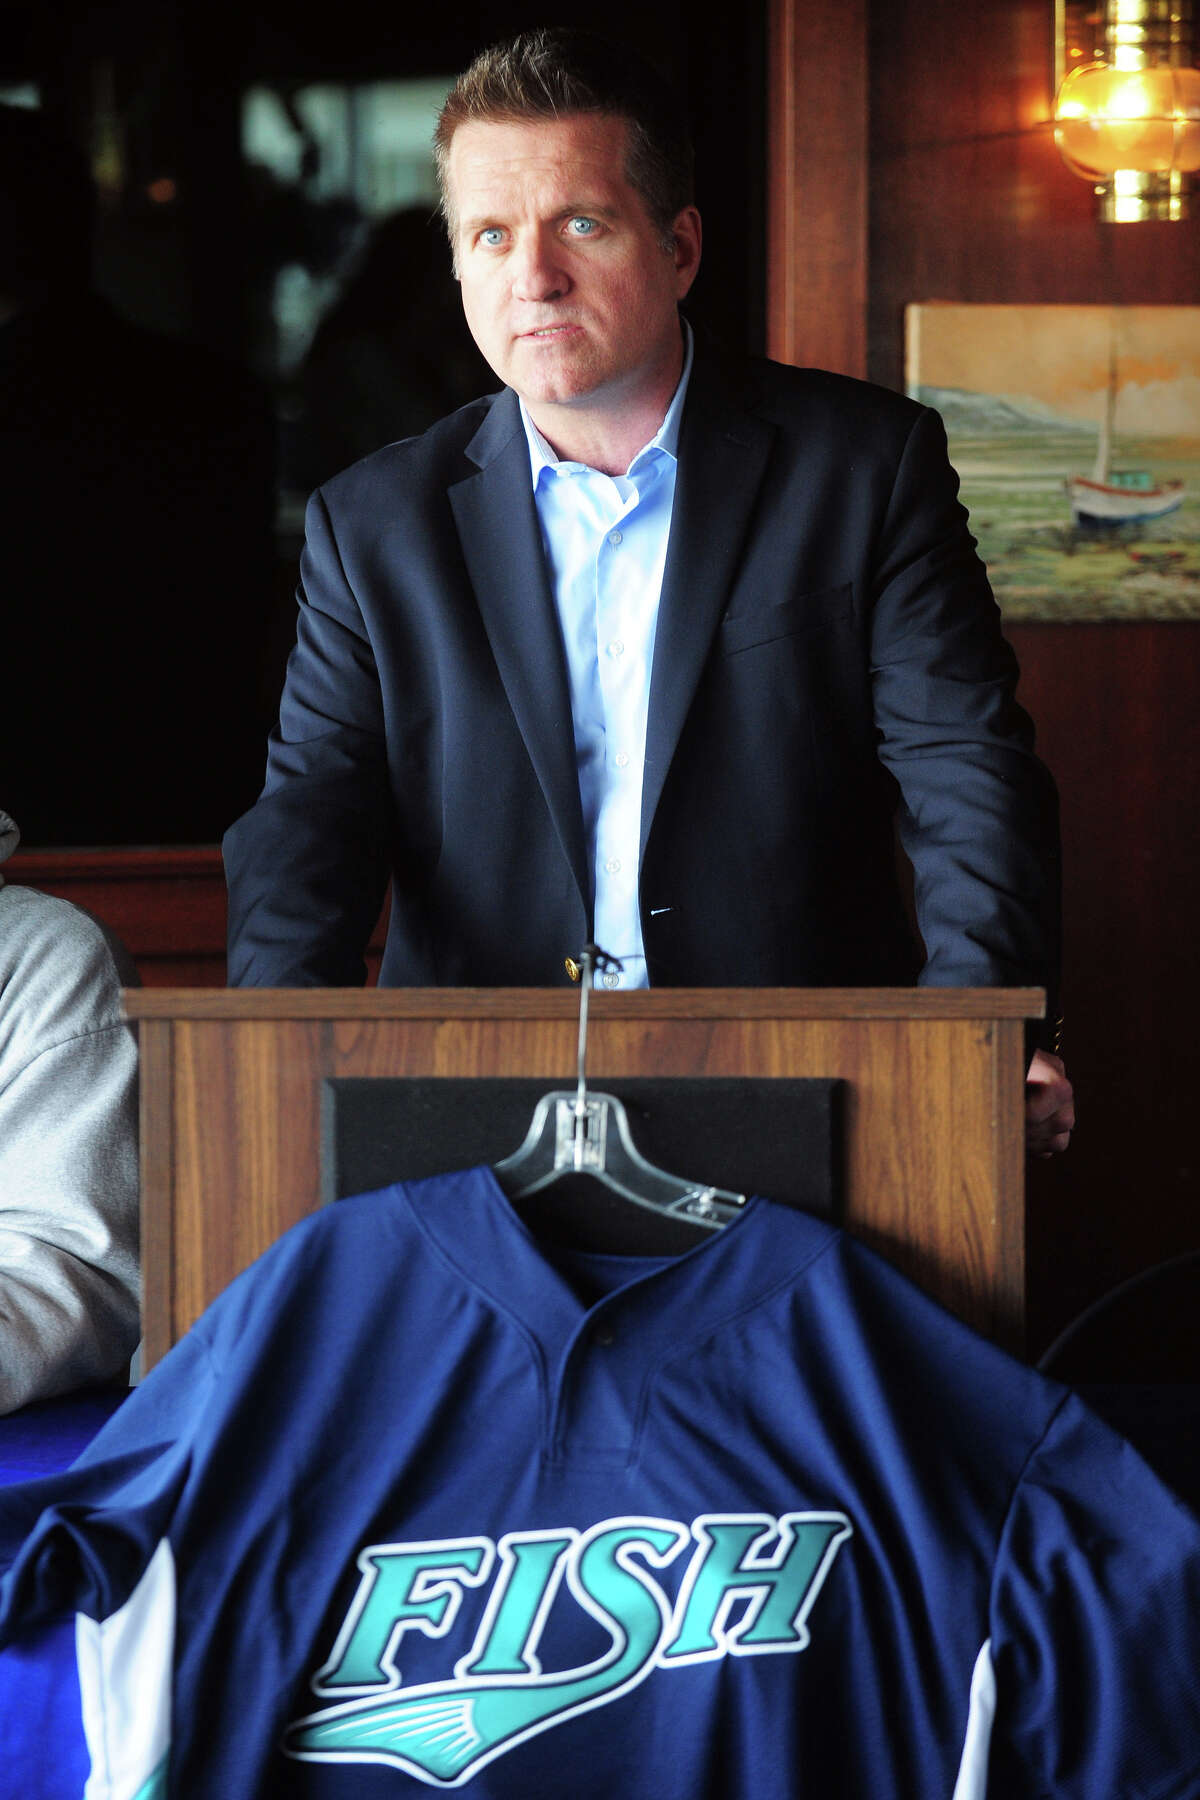 Former Bridgeport Bluefish General Manager Ken Shepard speaks at a media day press conference in Bridgeport, Conn., April 23, 2014.